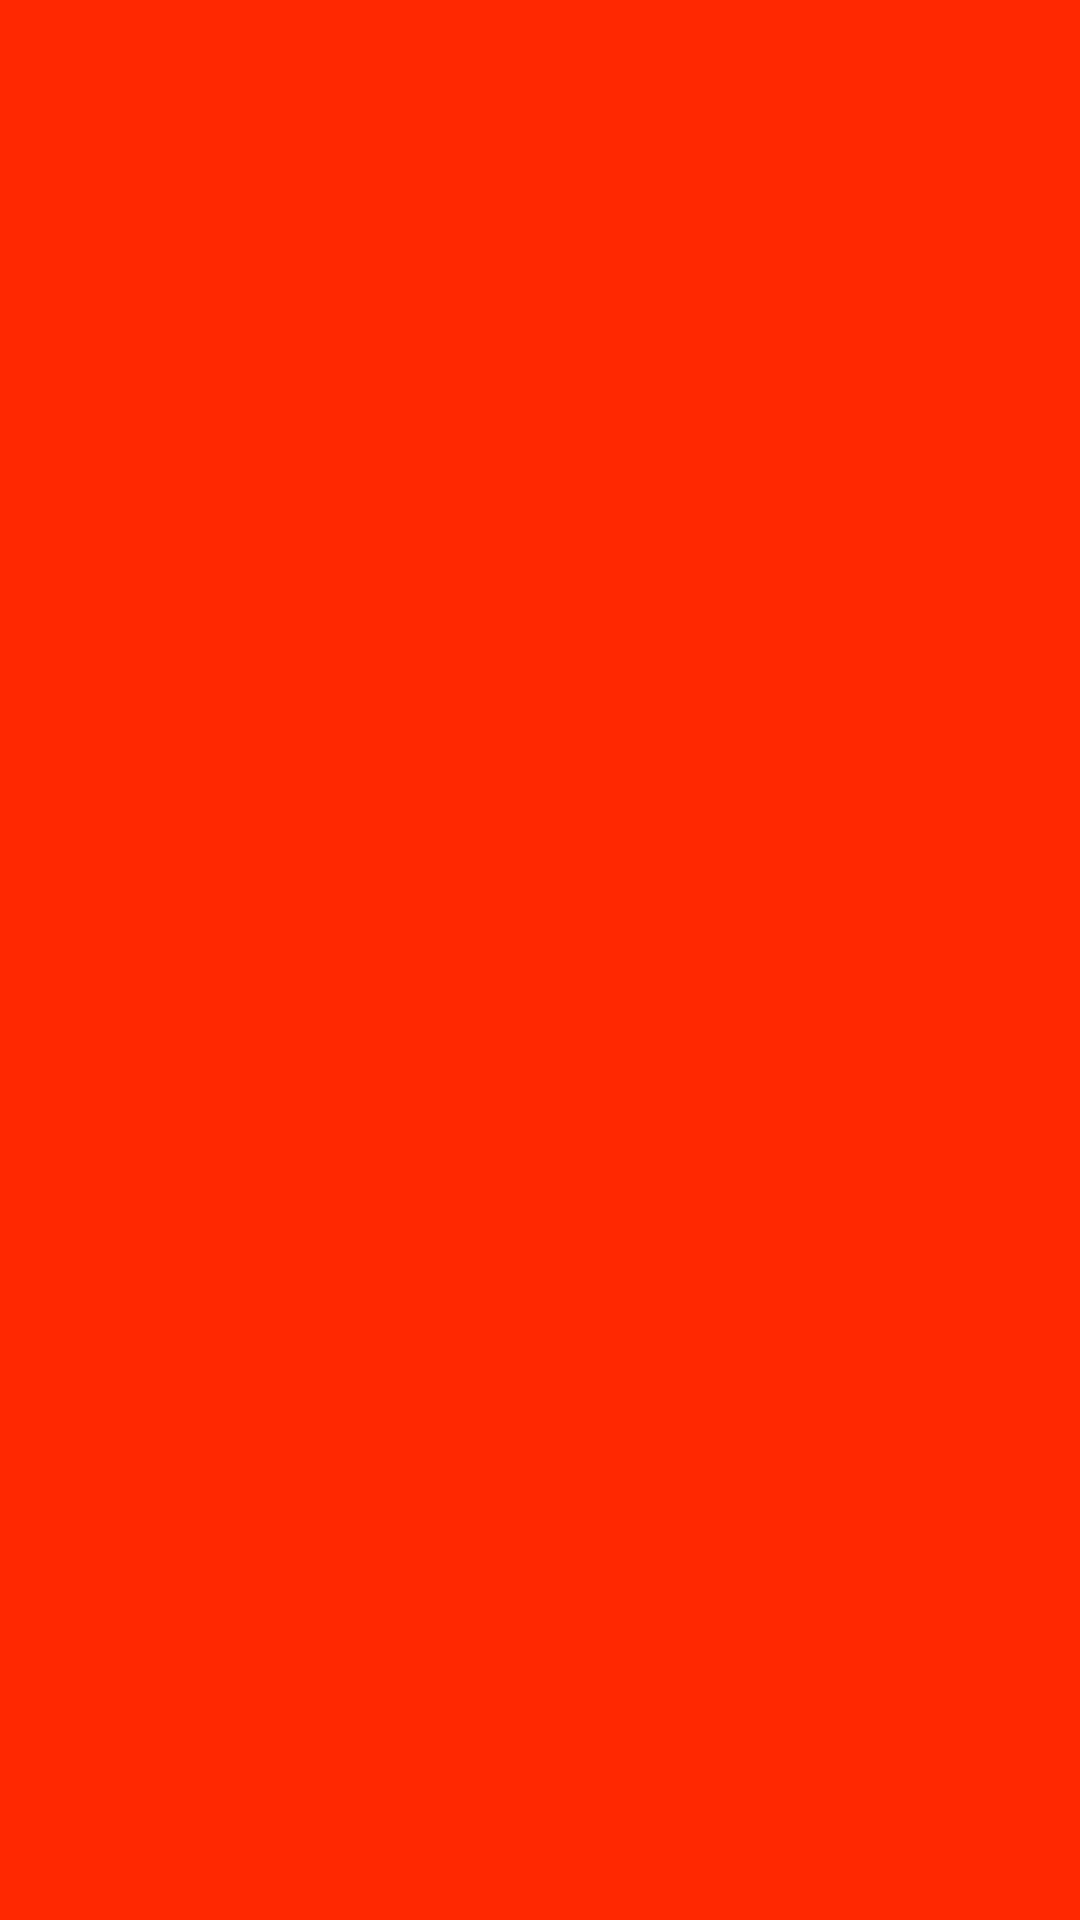 1080x1920 Ferrari Red Solid Color Background